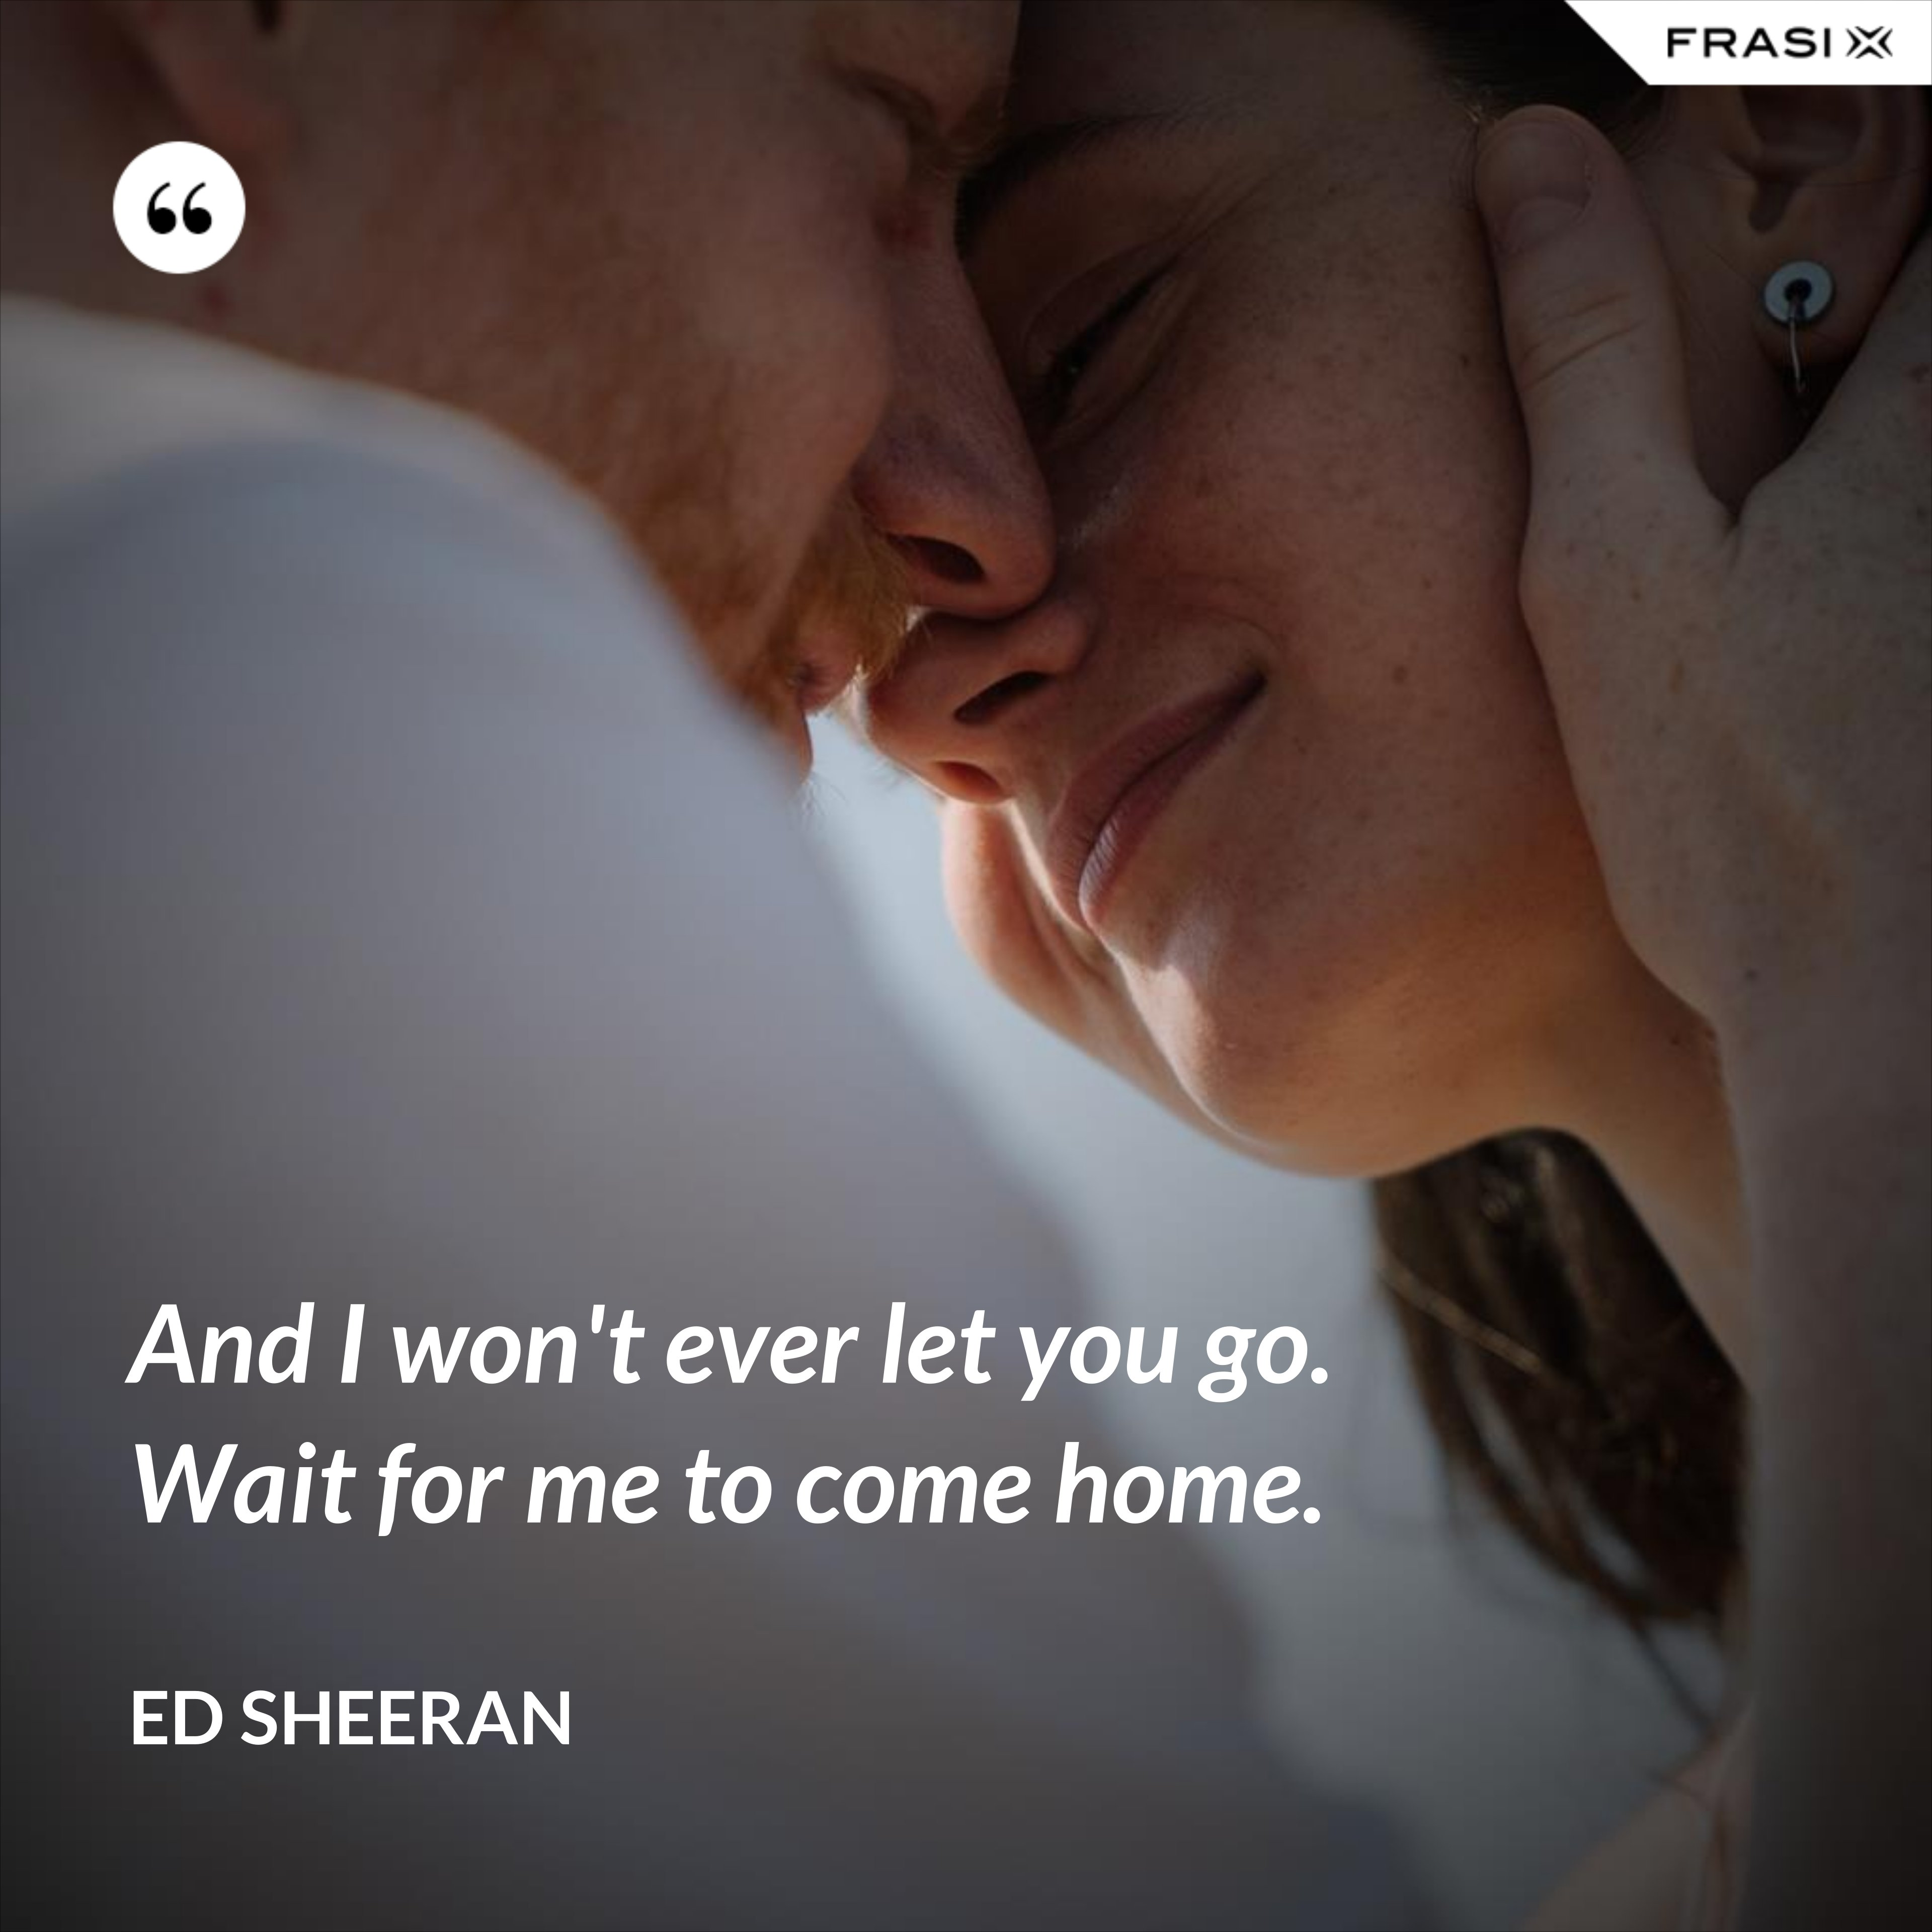 And I won't ever let you go. Wait for me to come home. - Ed Sheeran